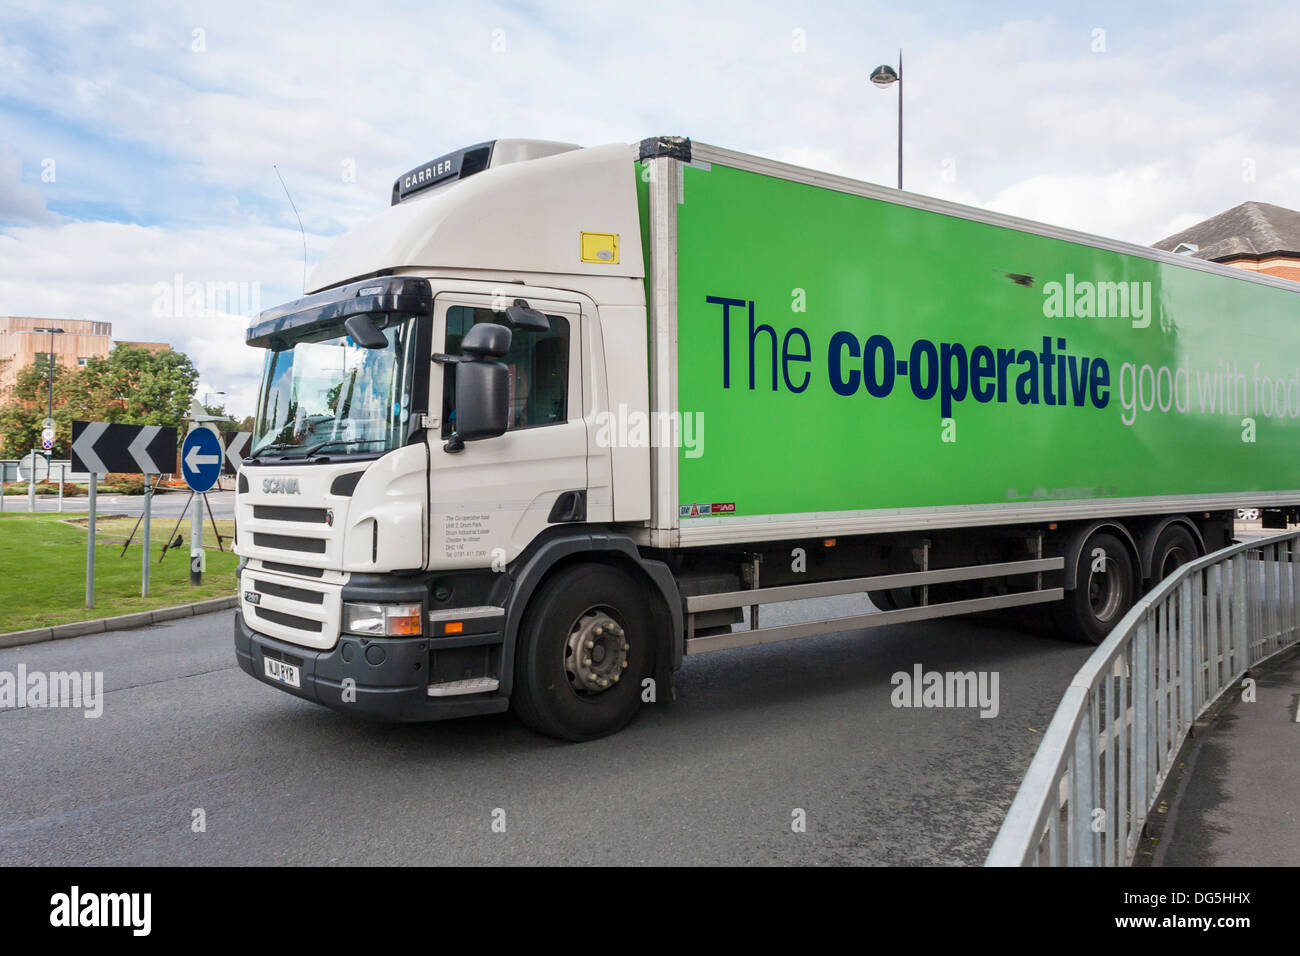 HGV delivery vehicle for Co-operative Food on the road, Maidenhead, Berkshire, England, GB, UK. - Stock Image